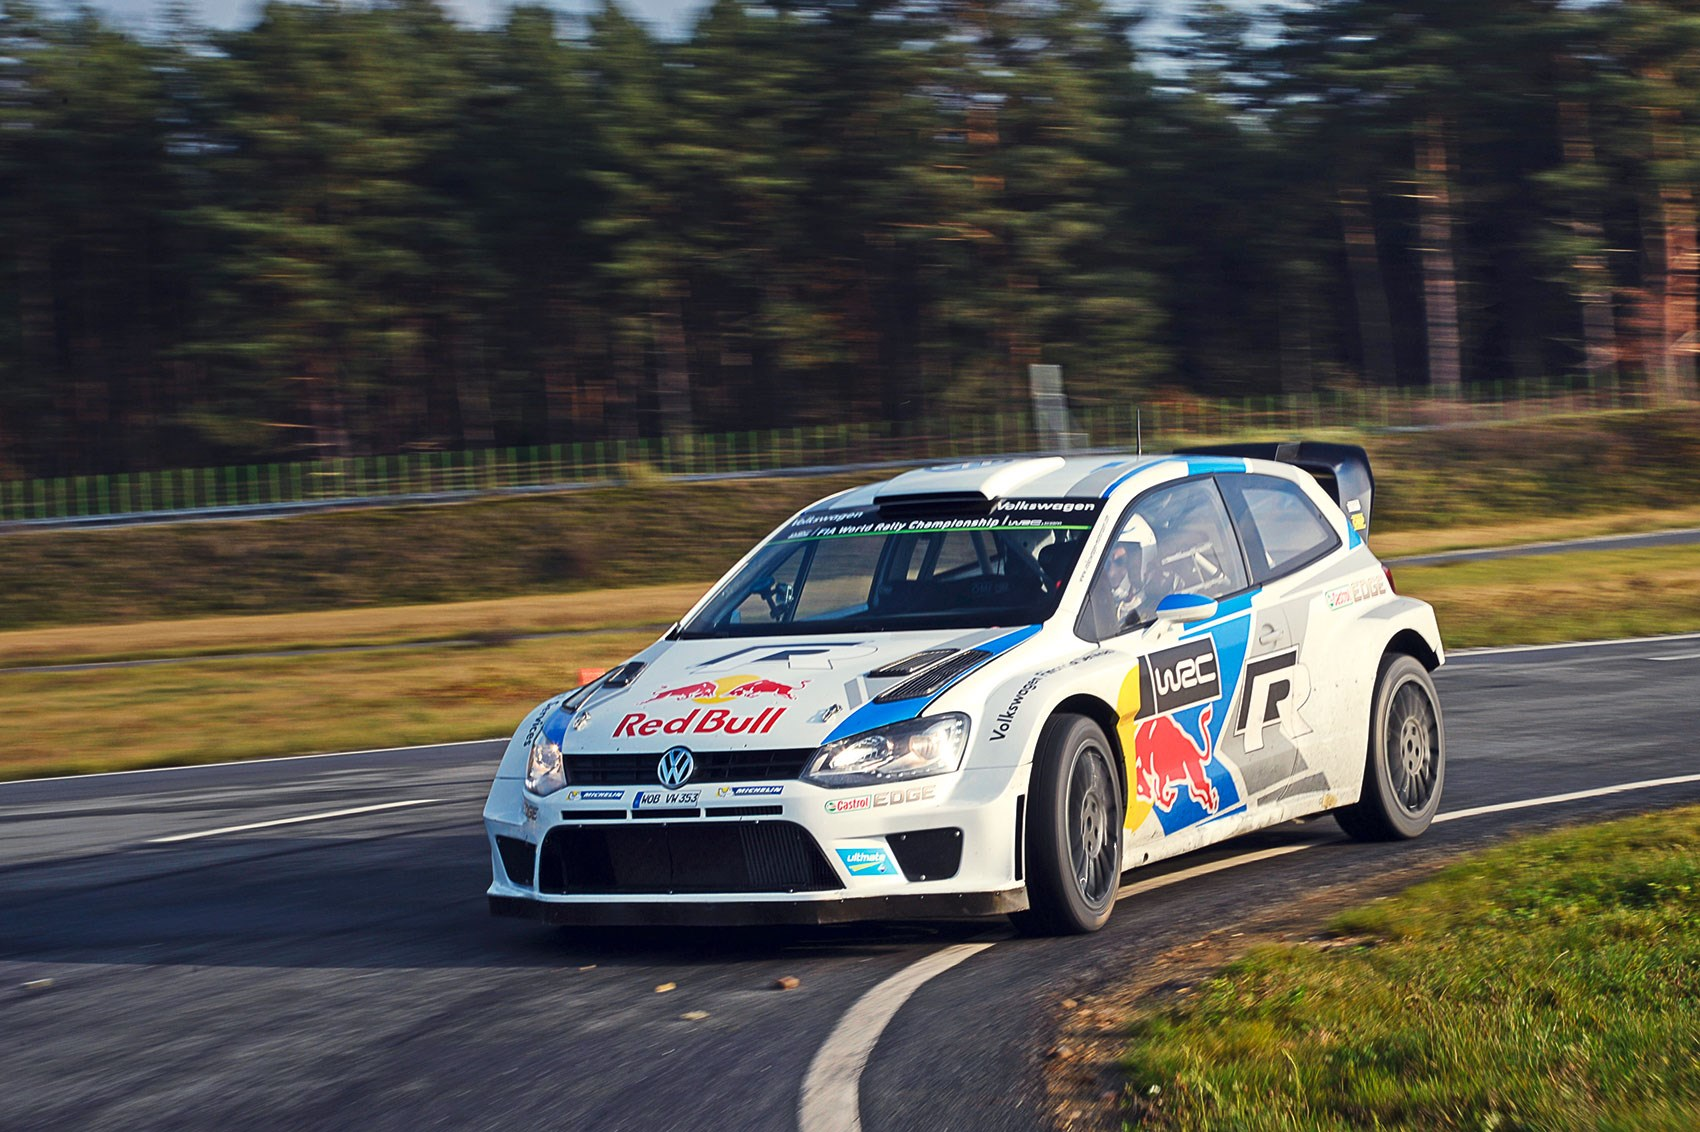 Wrc Cars For Sale Uk